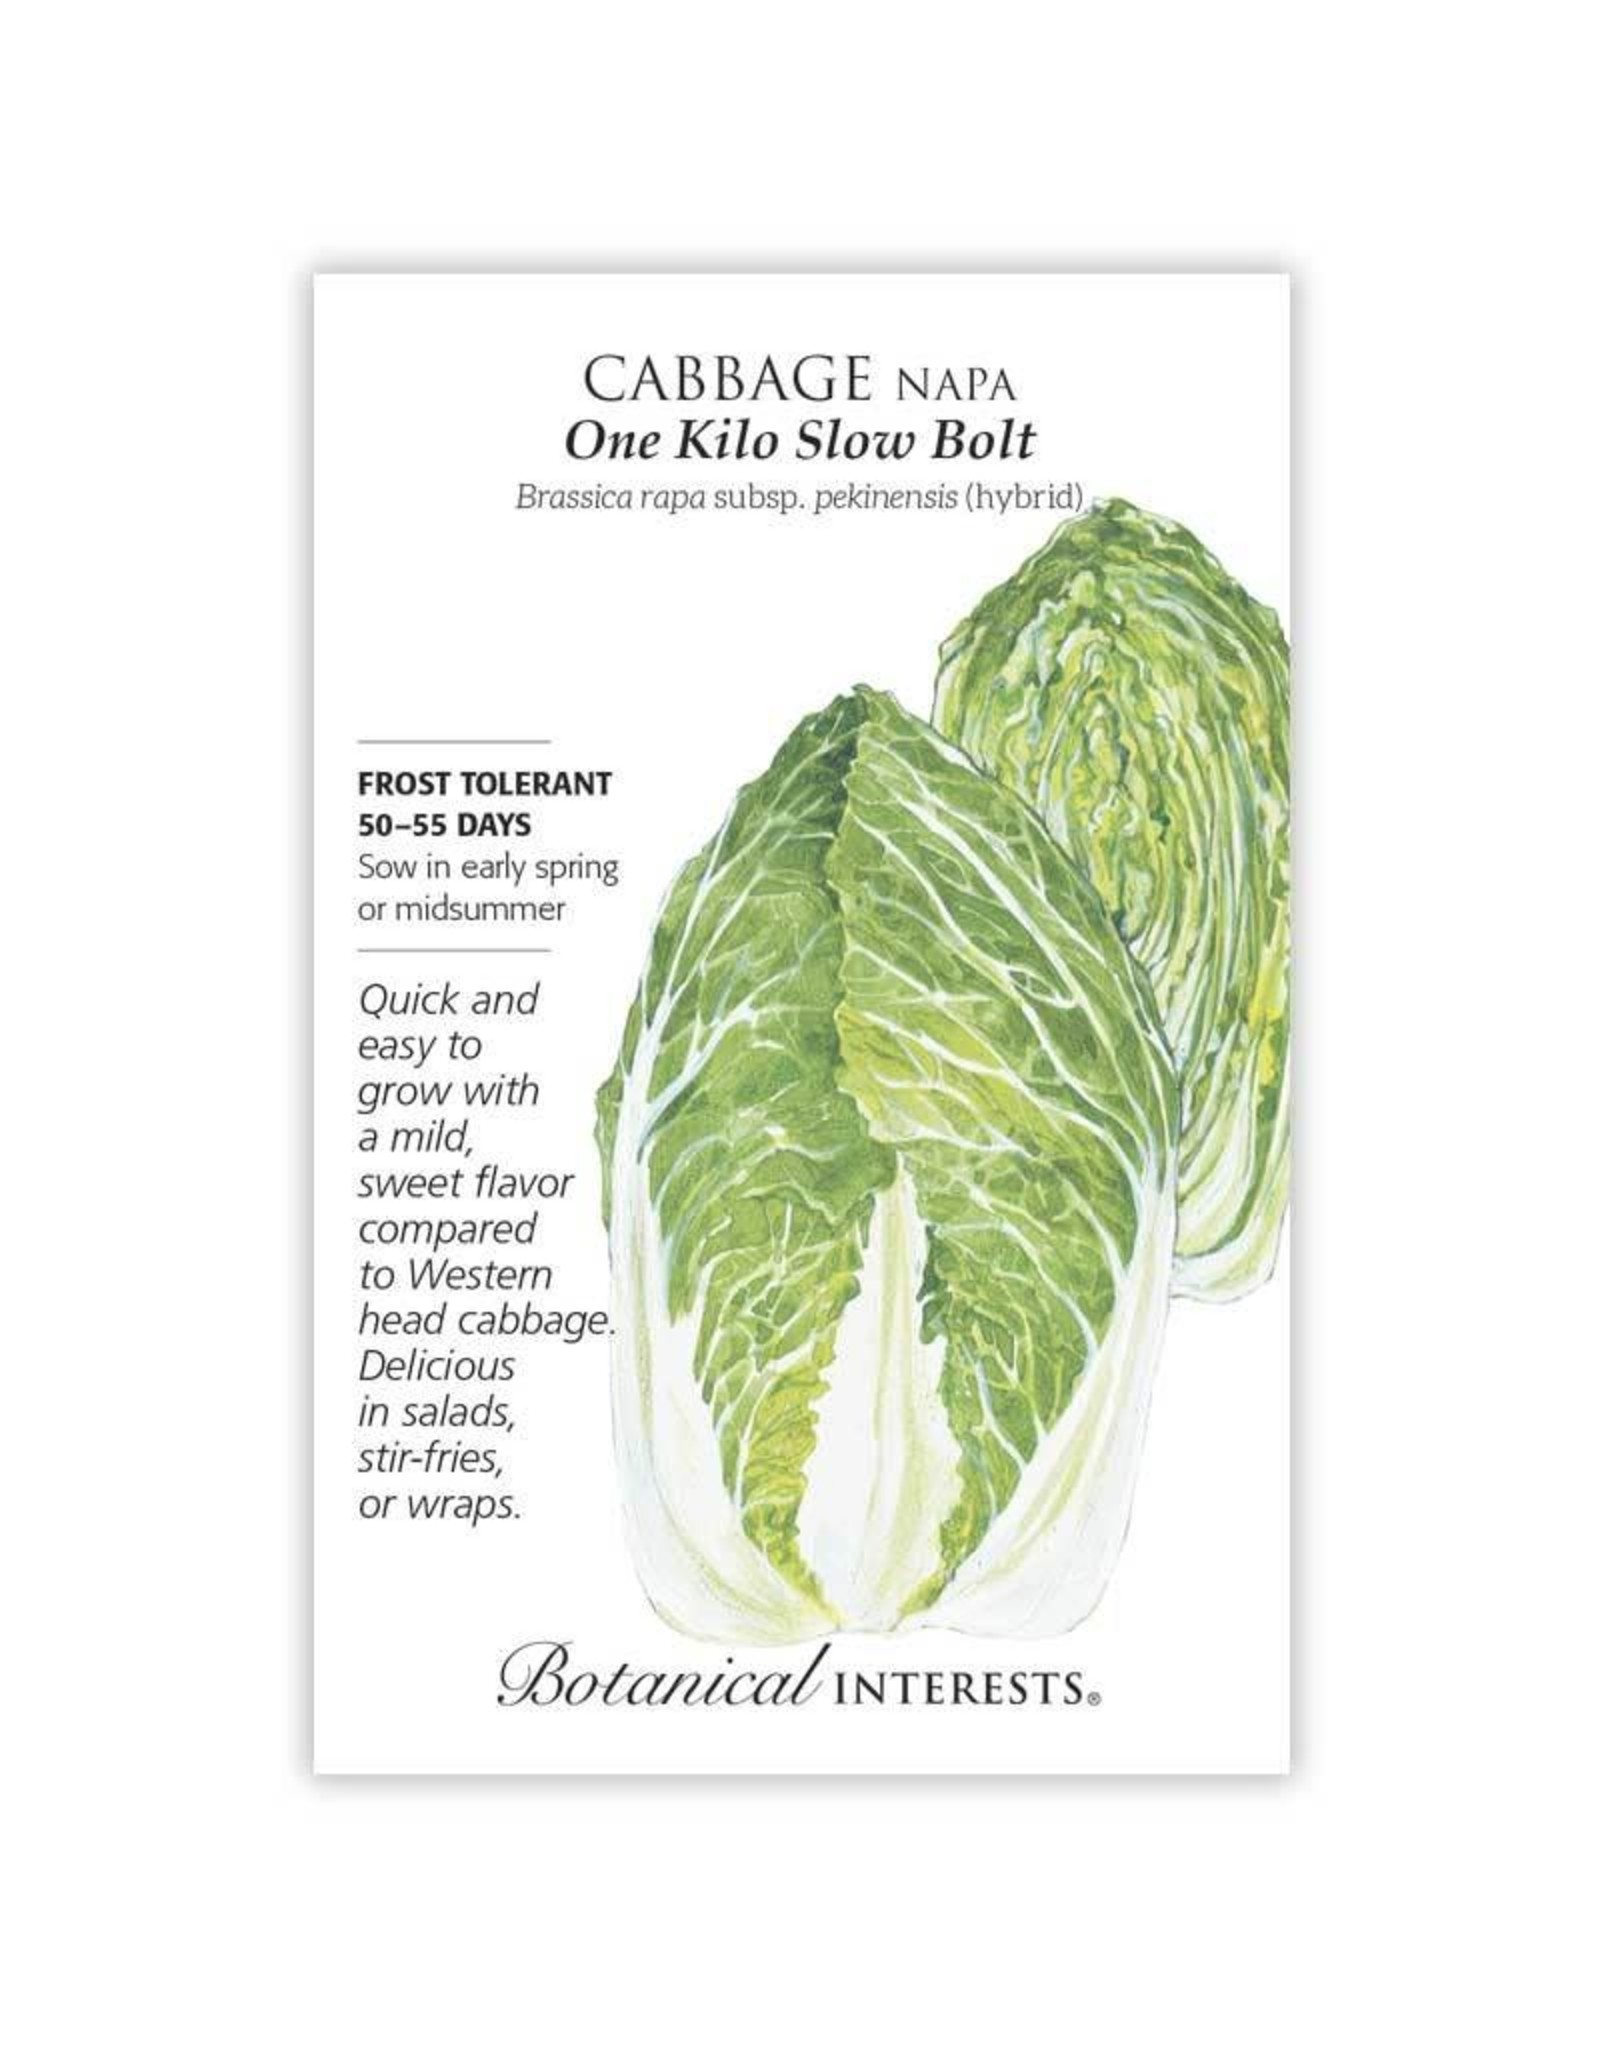 Seeds - Cabbage Napa One Kilo Hybrid